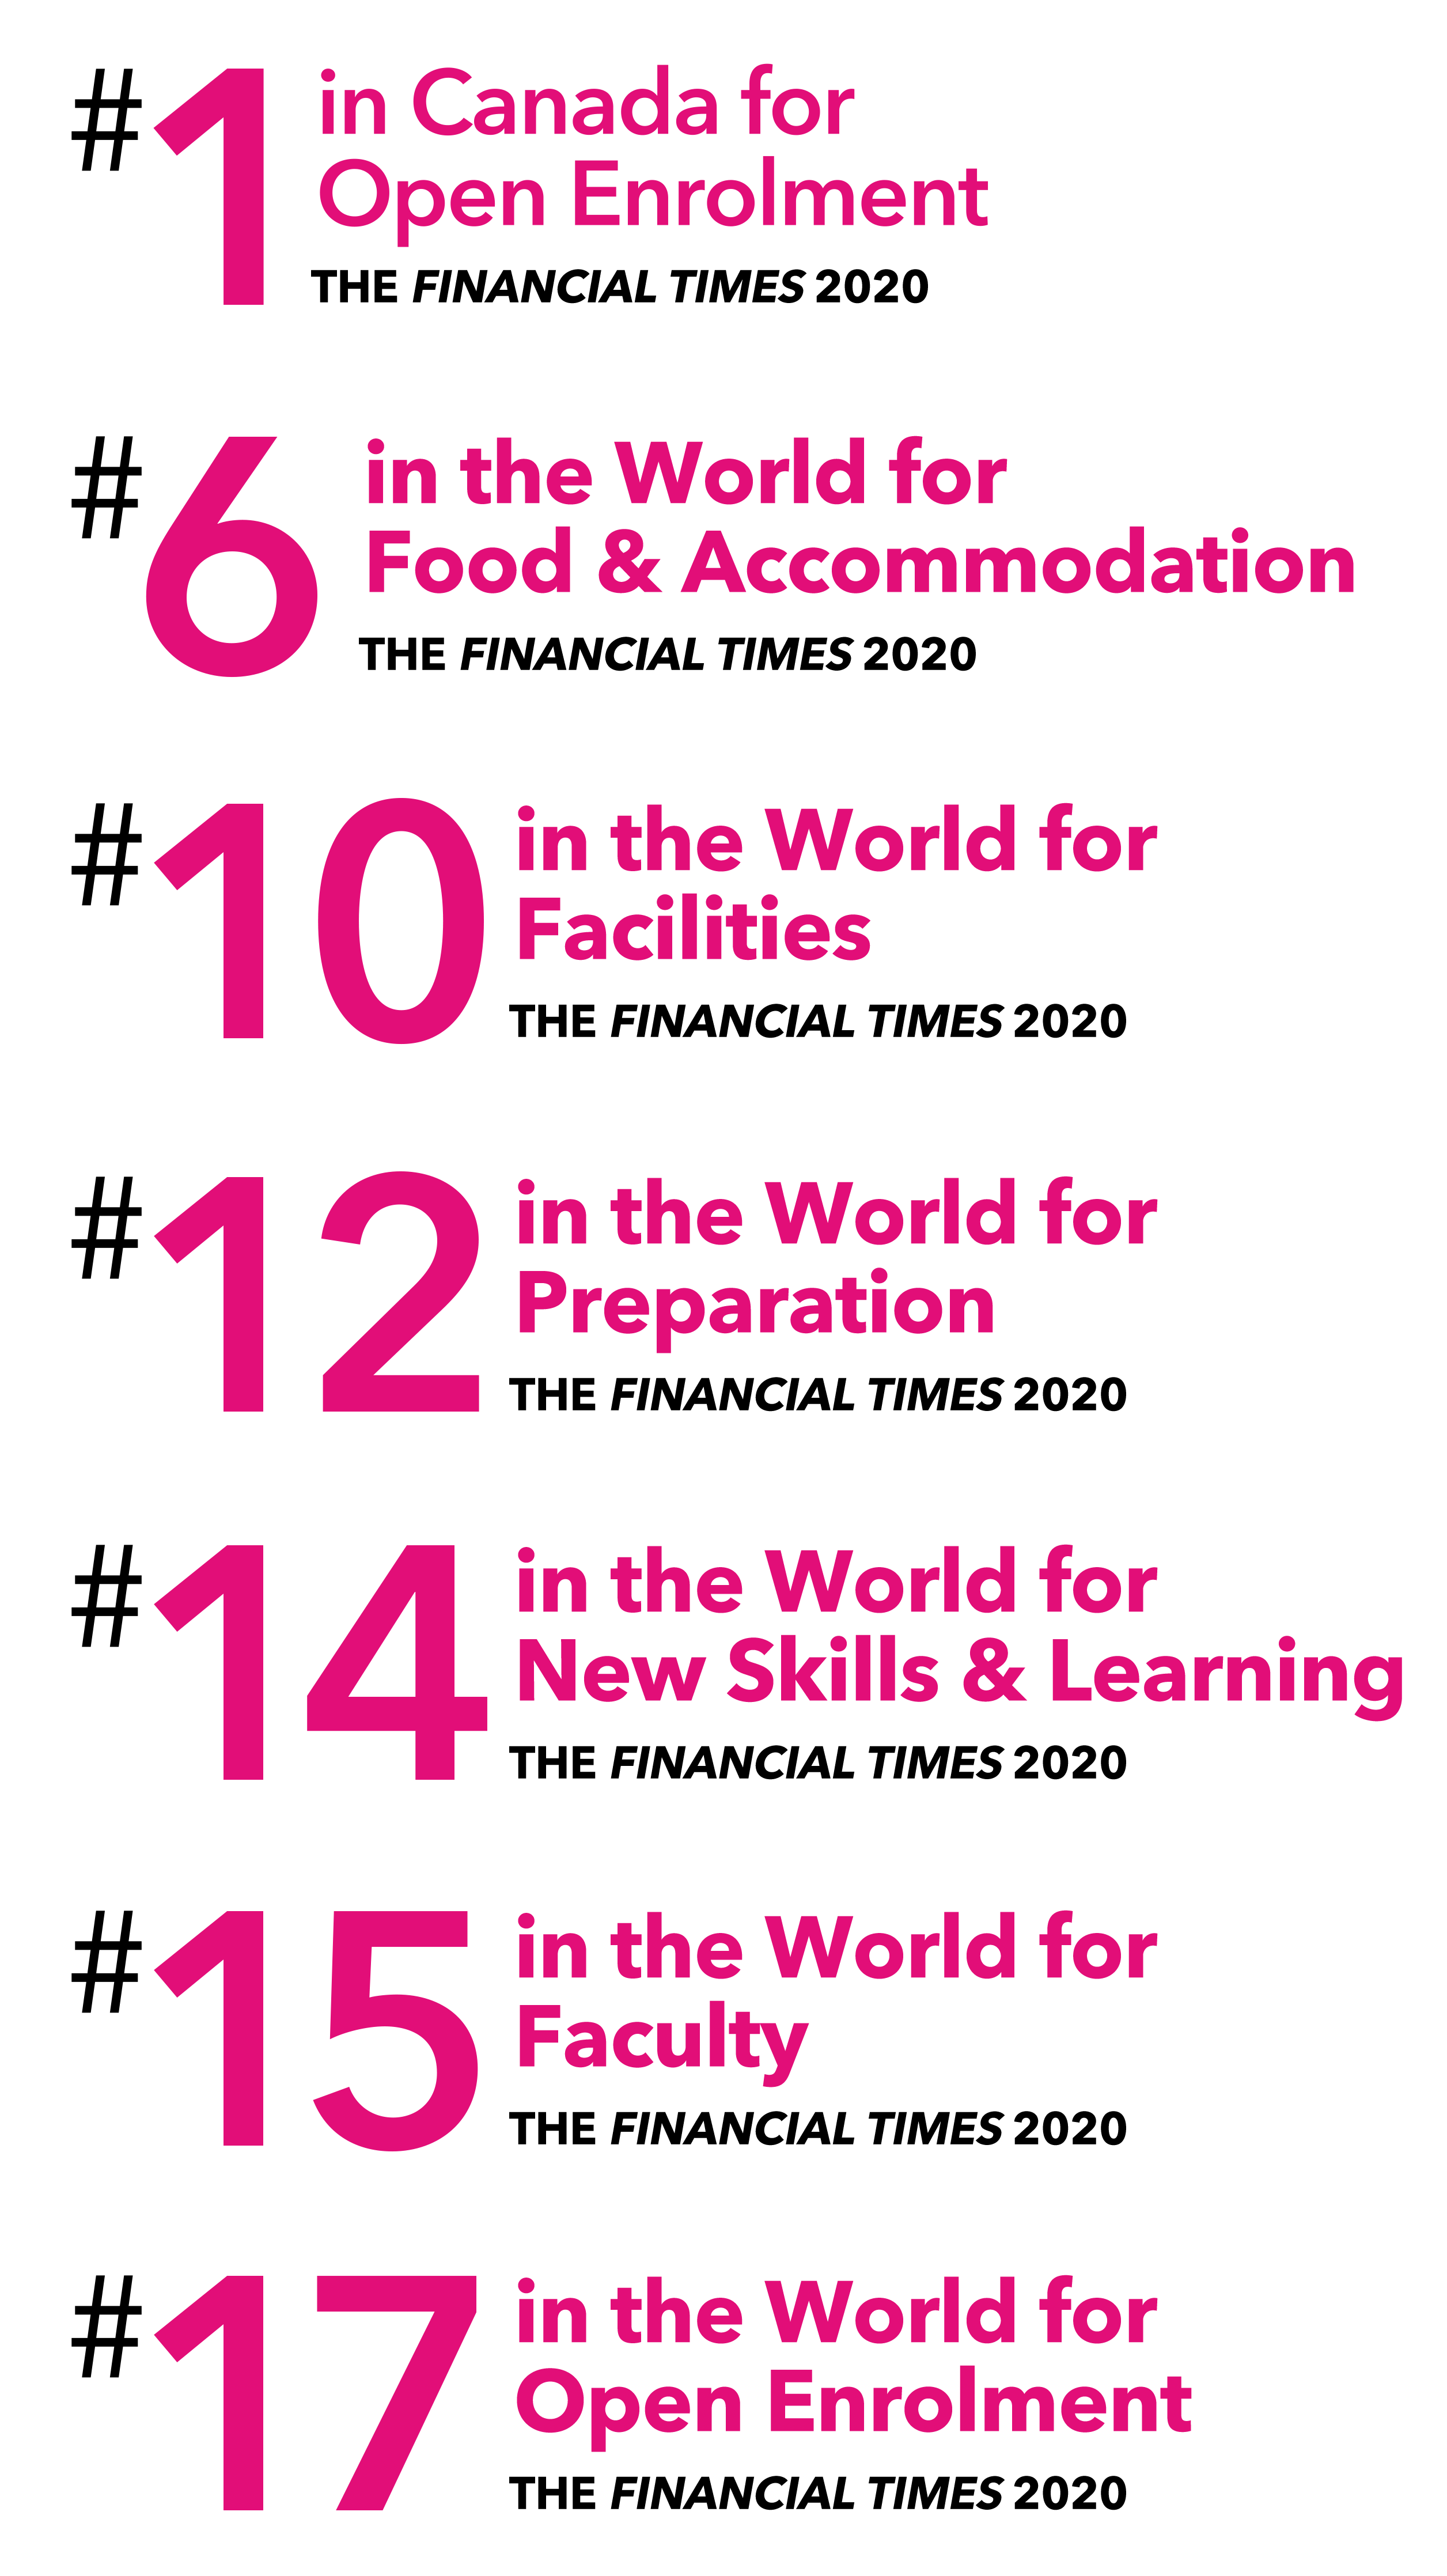 #1 in Canada for Open Education, #6 in the World for Food & Accomodation, #10 in the World for Facilities, #12 in the World for Preparation, #14 in the World for New Skills & Learning, #15 in the World for Faculty, #17 in the World for Open Enrolment